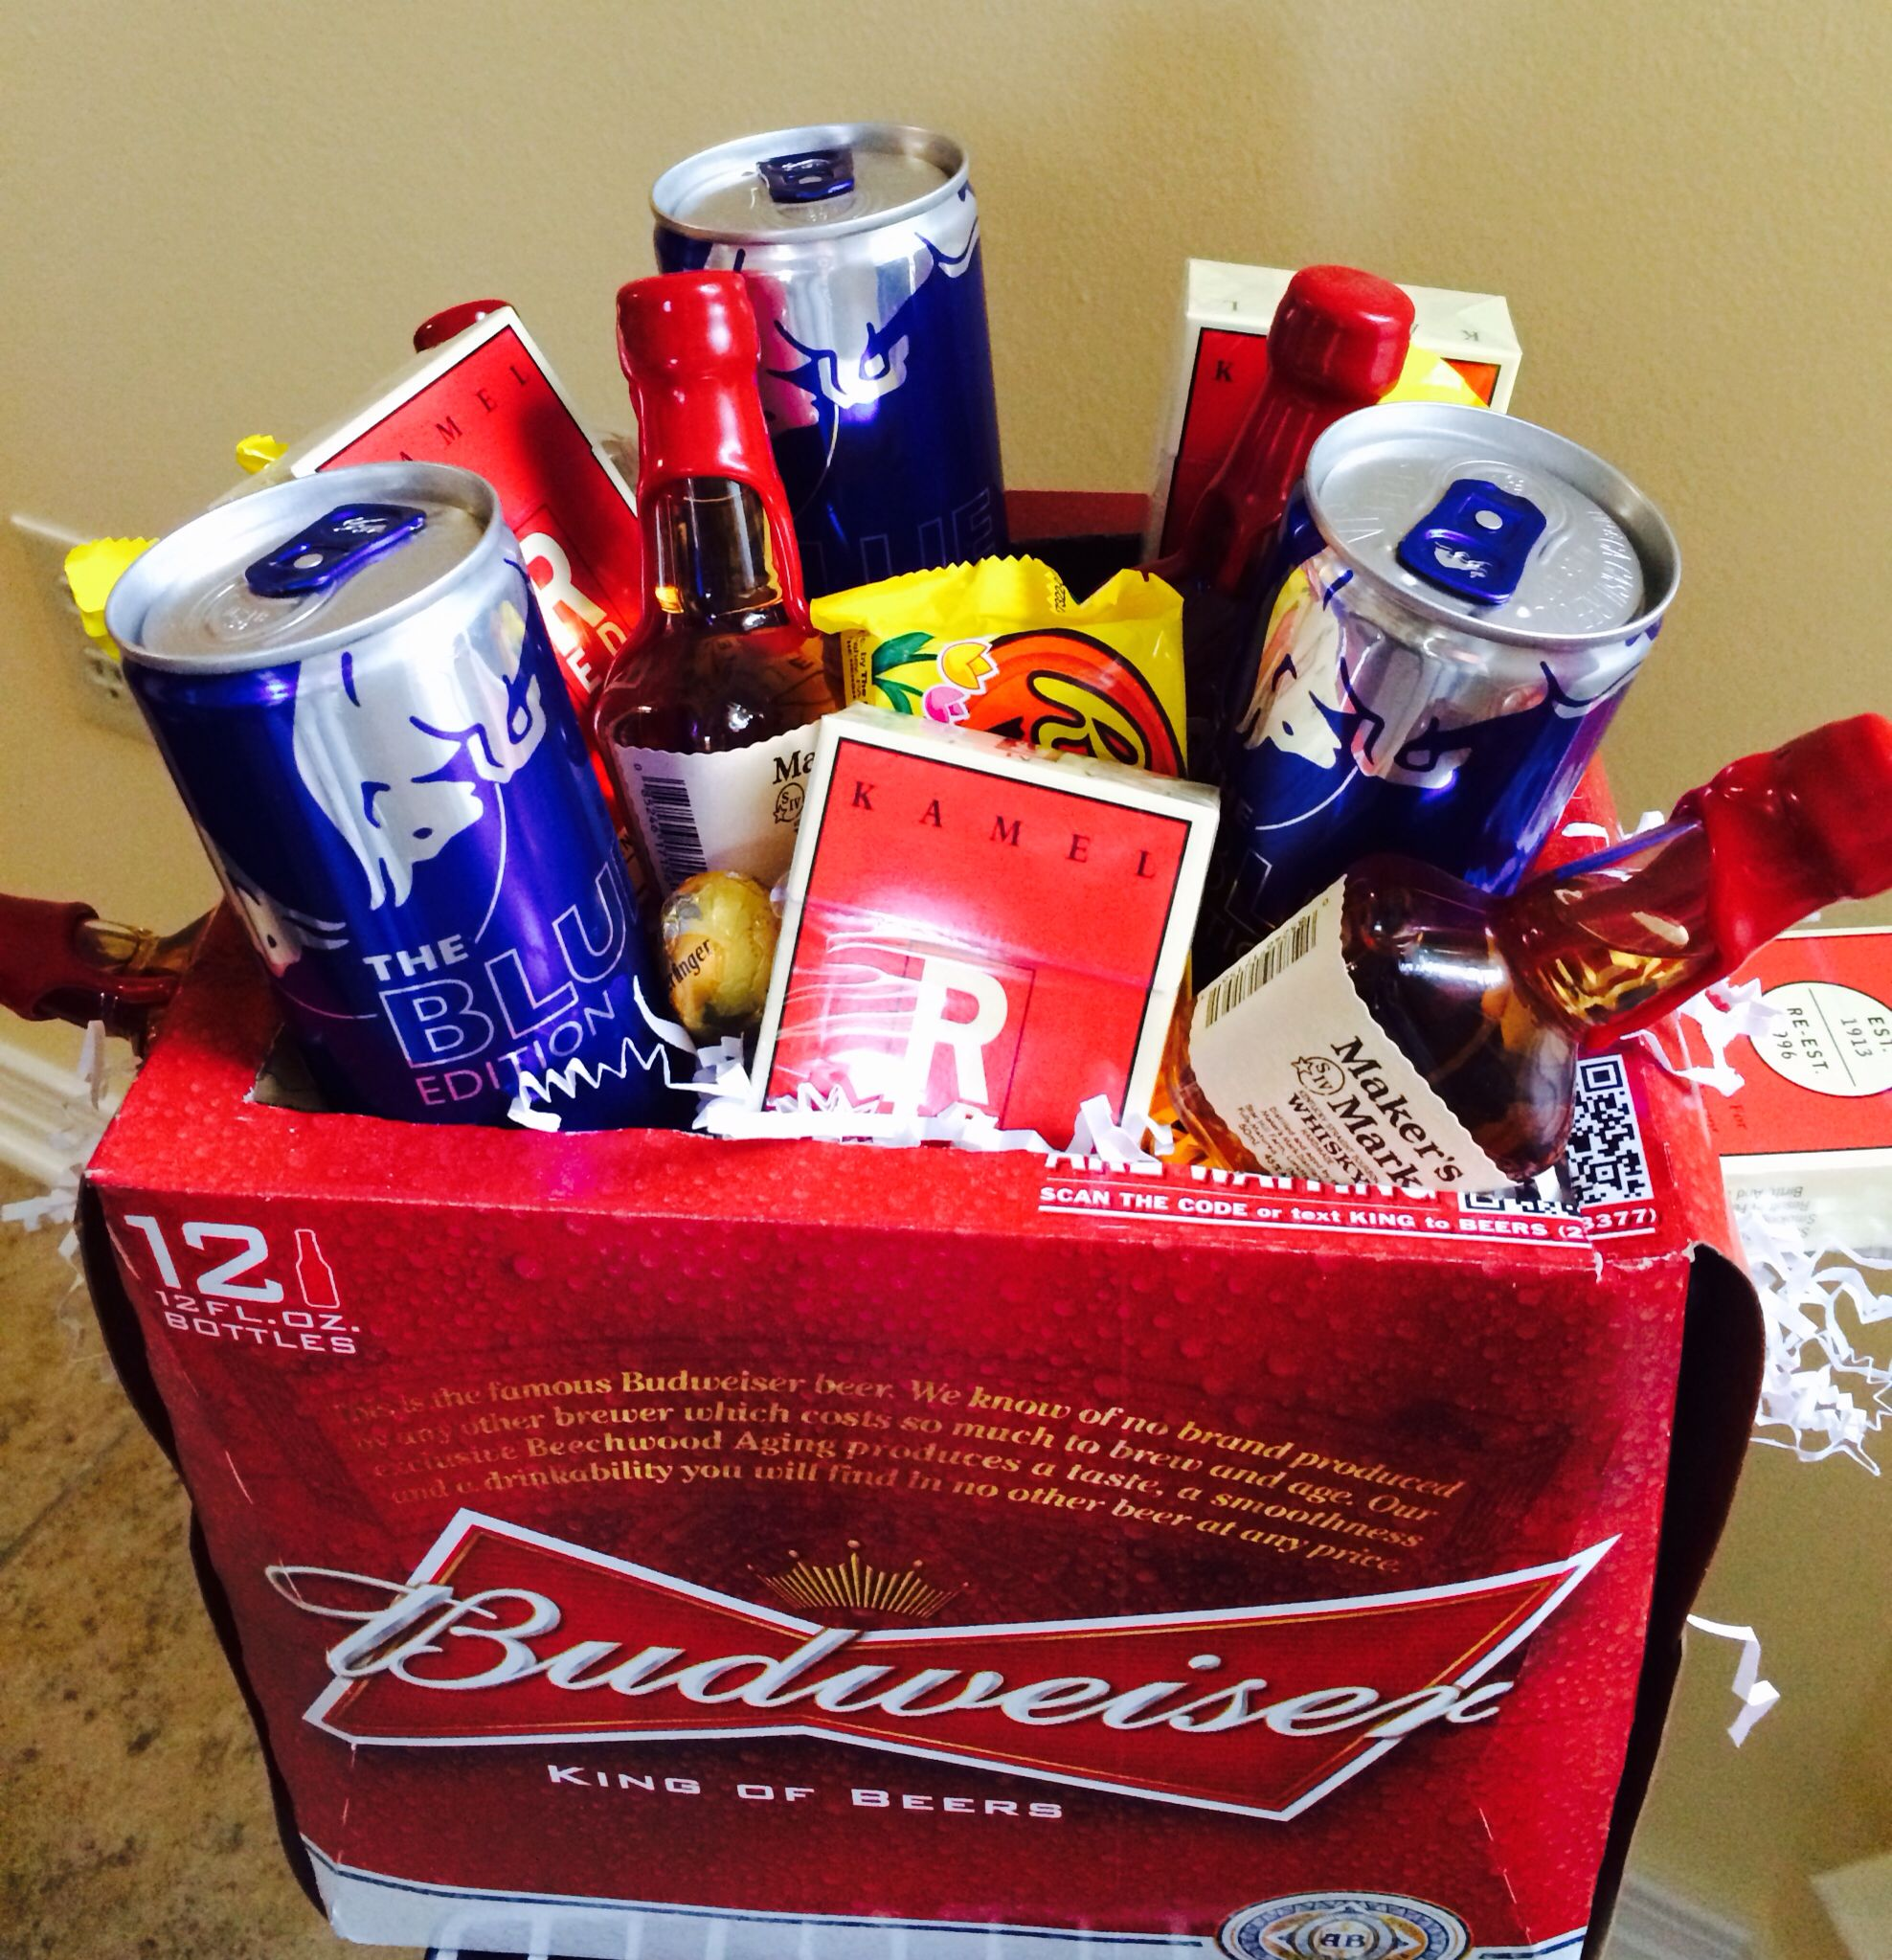 Adult Easter Basket DIY. Made It If A Beer Box And Filled